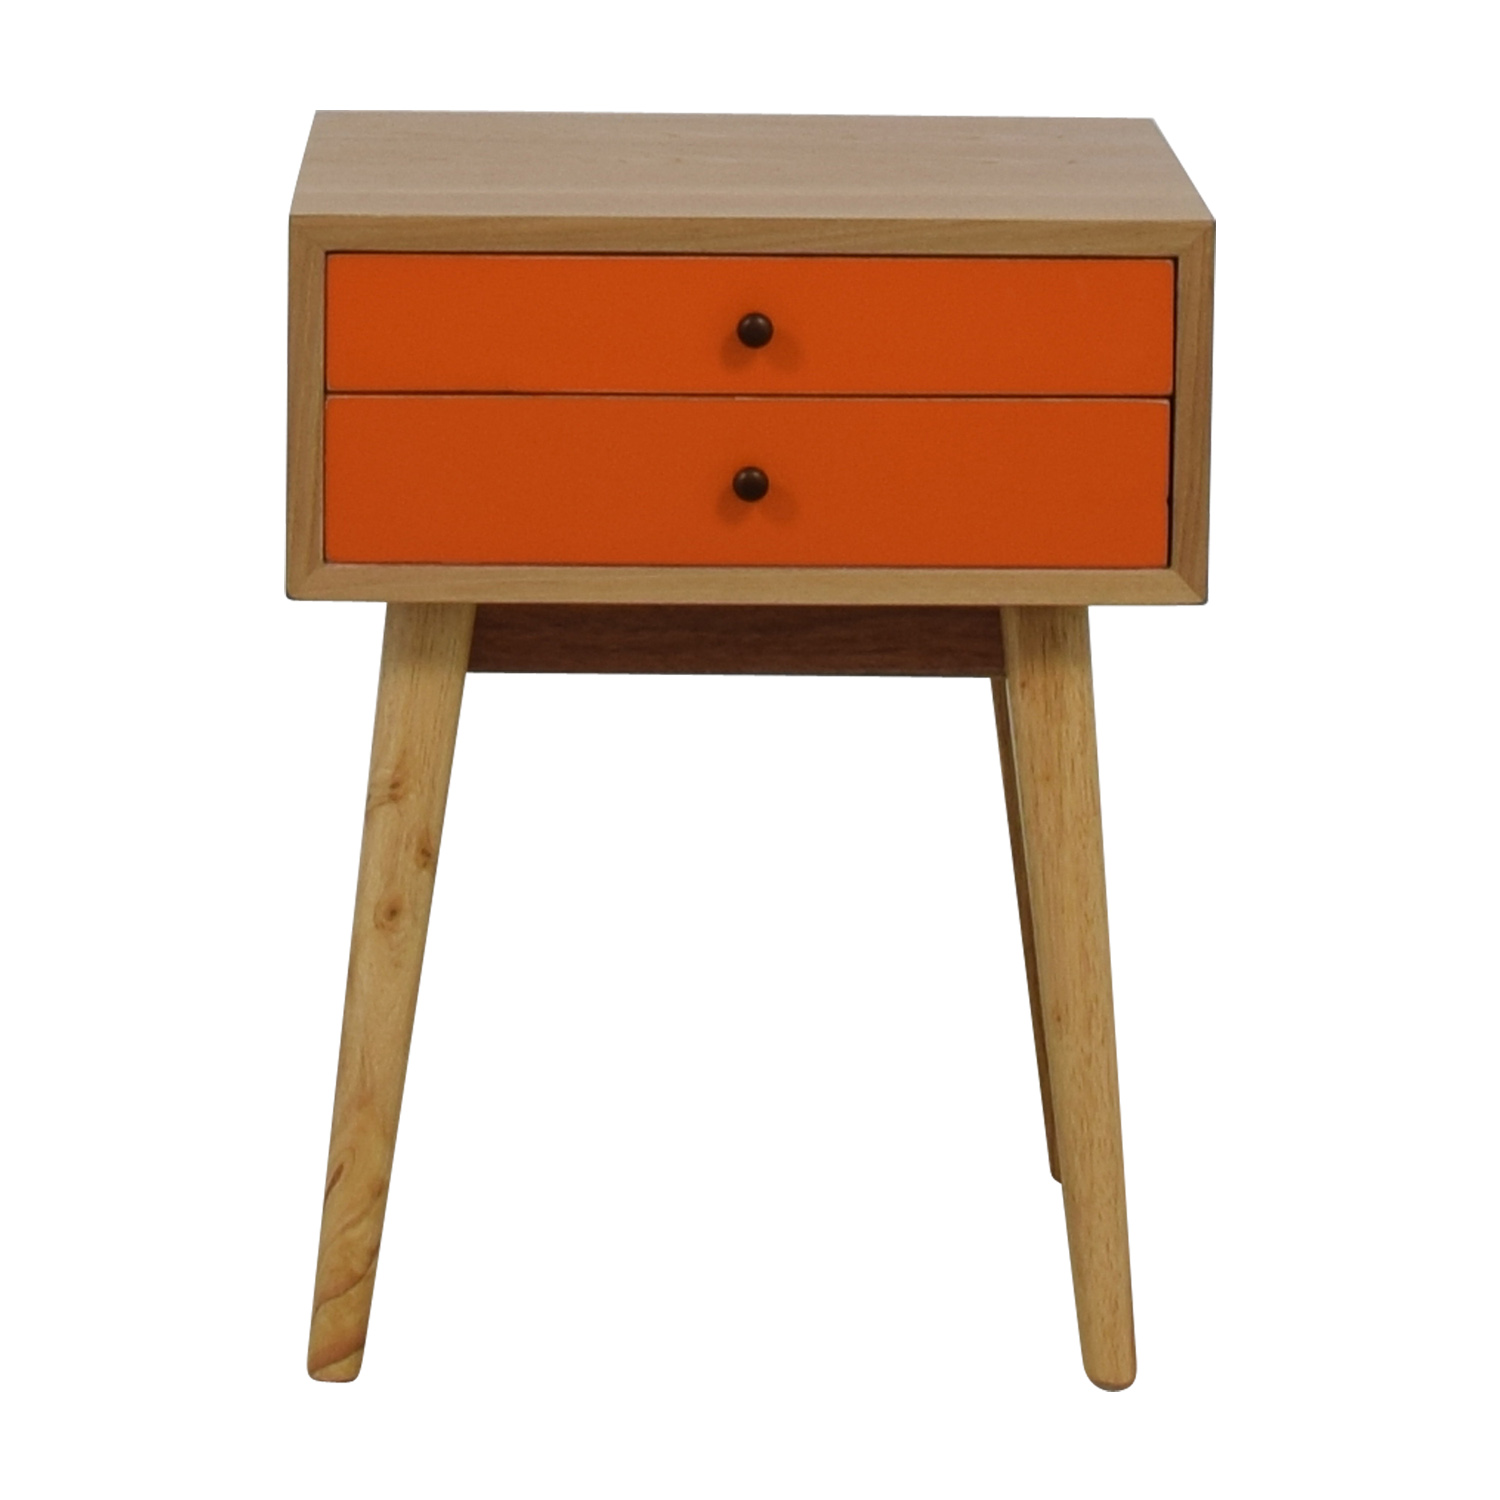 Orange and Wood Art Deco Single Drawer Nightstand for sale